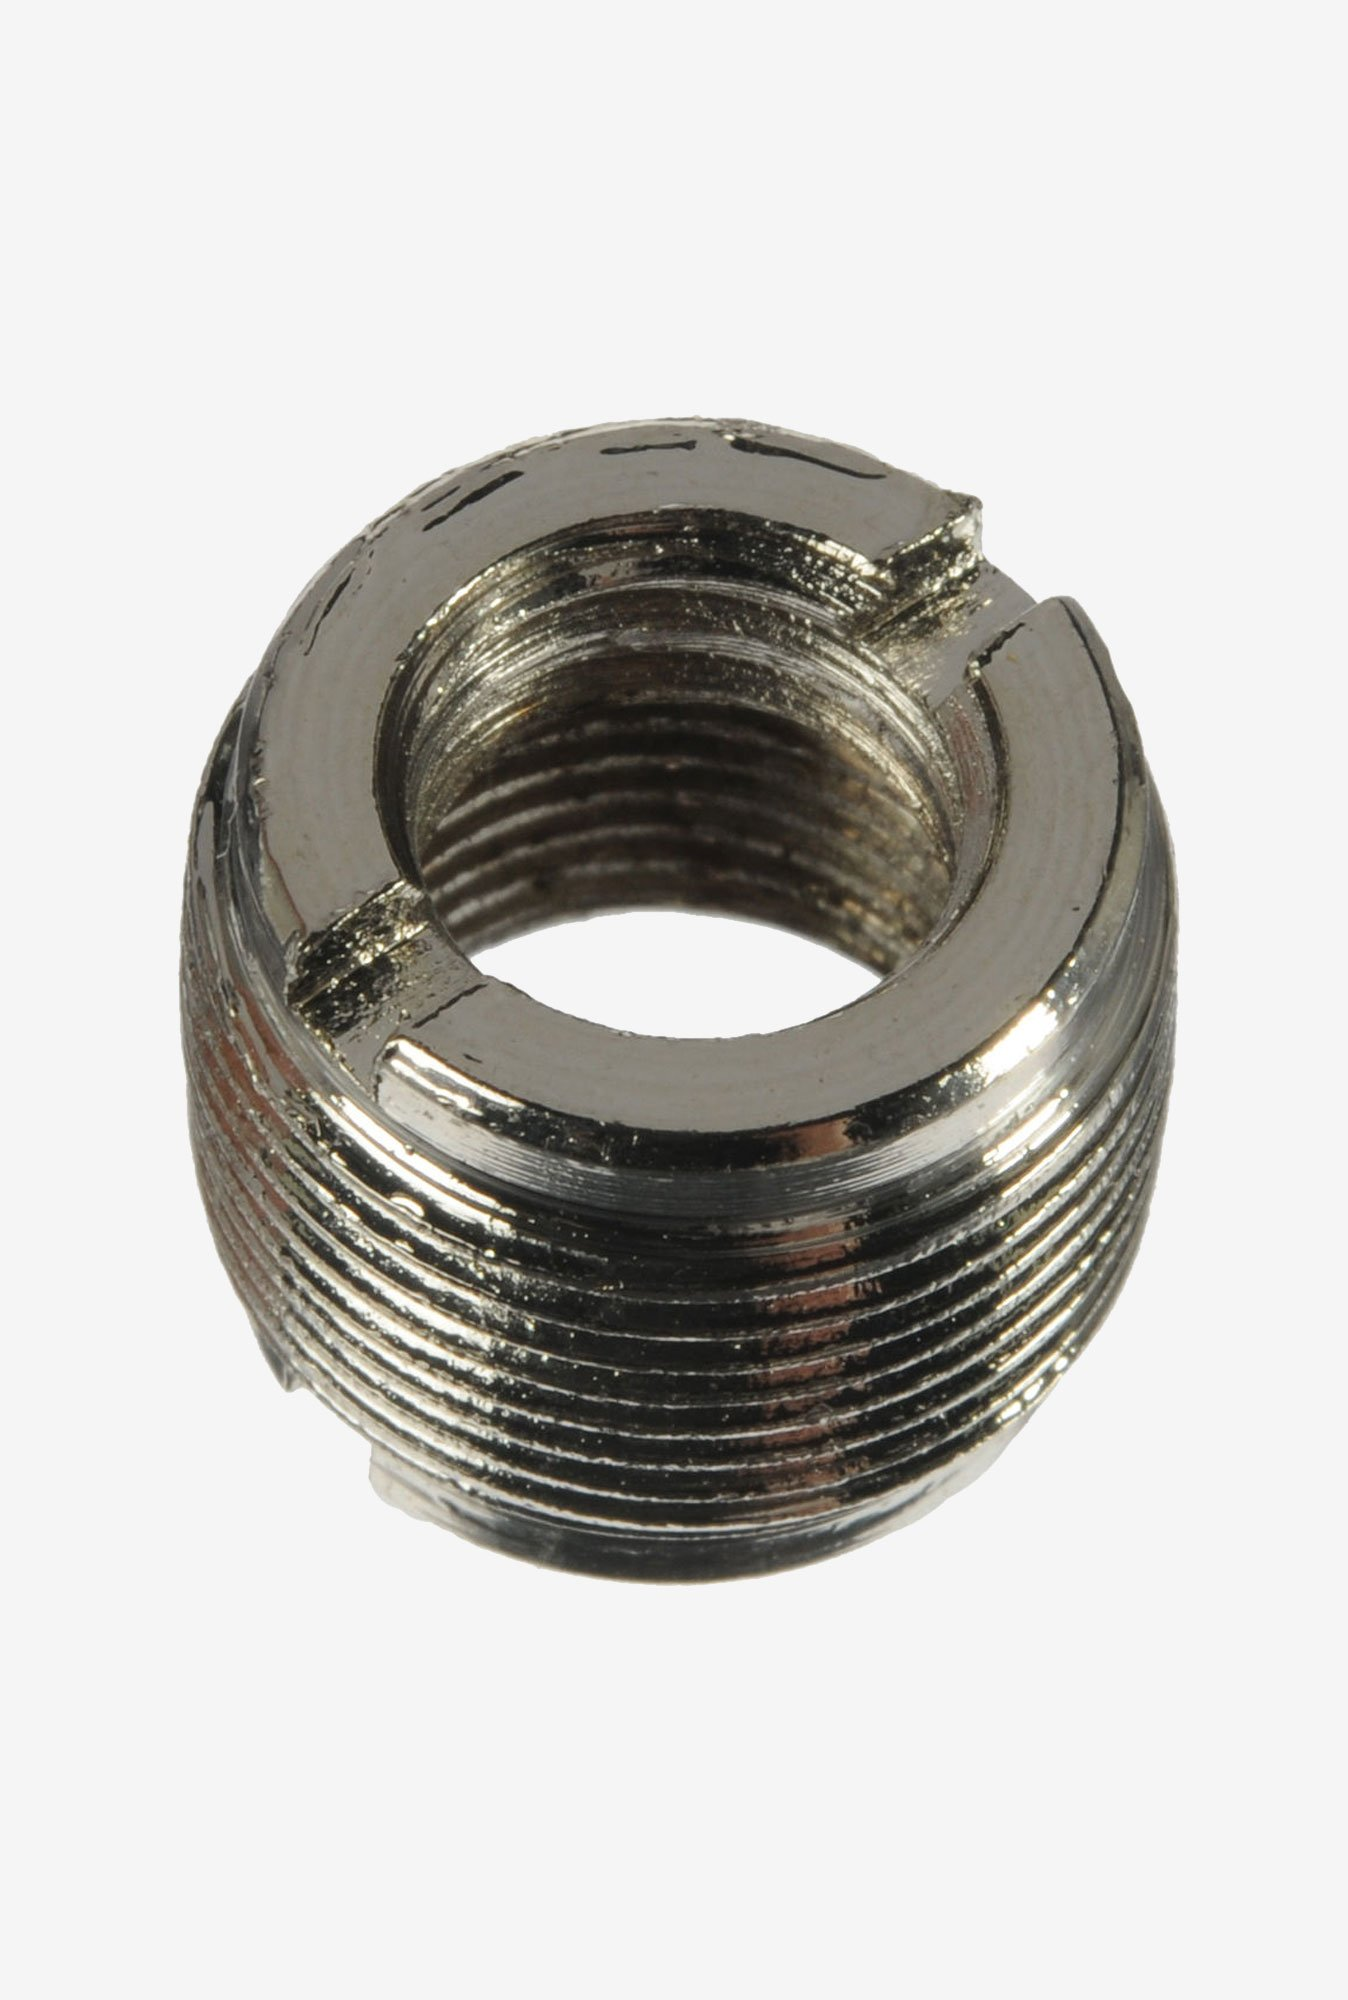 Gitzo G-1145 10mm 3/8-5/8 Tripod Bushing